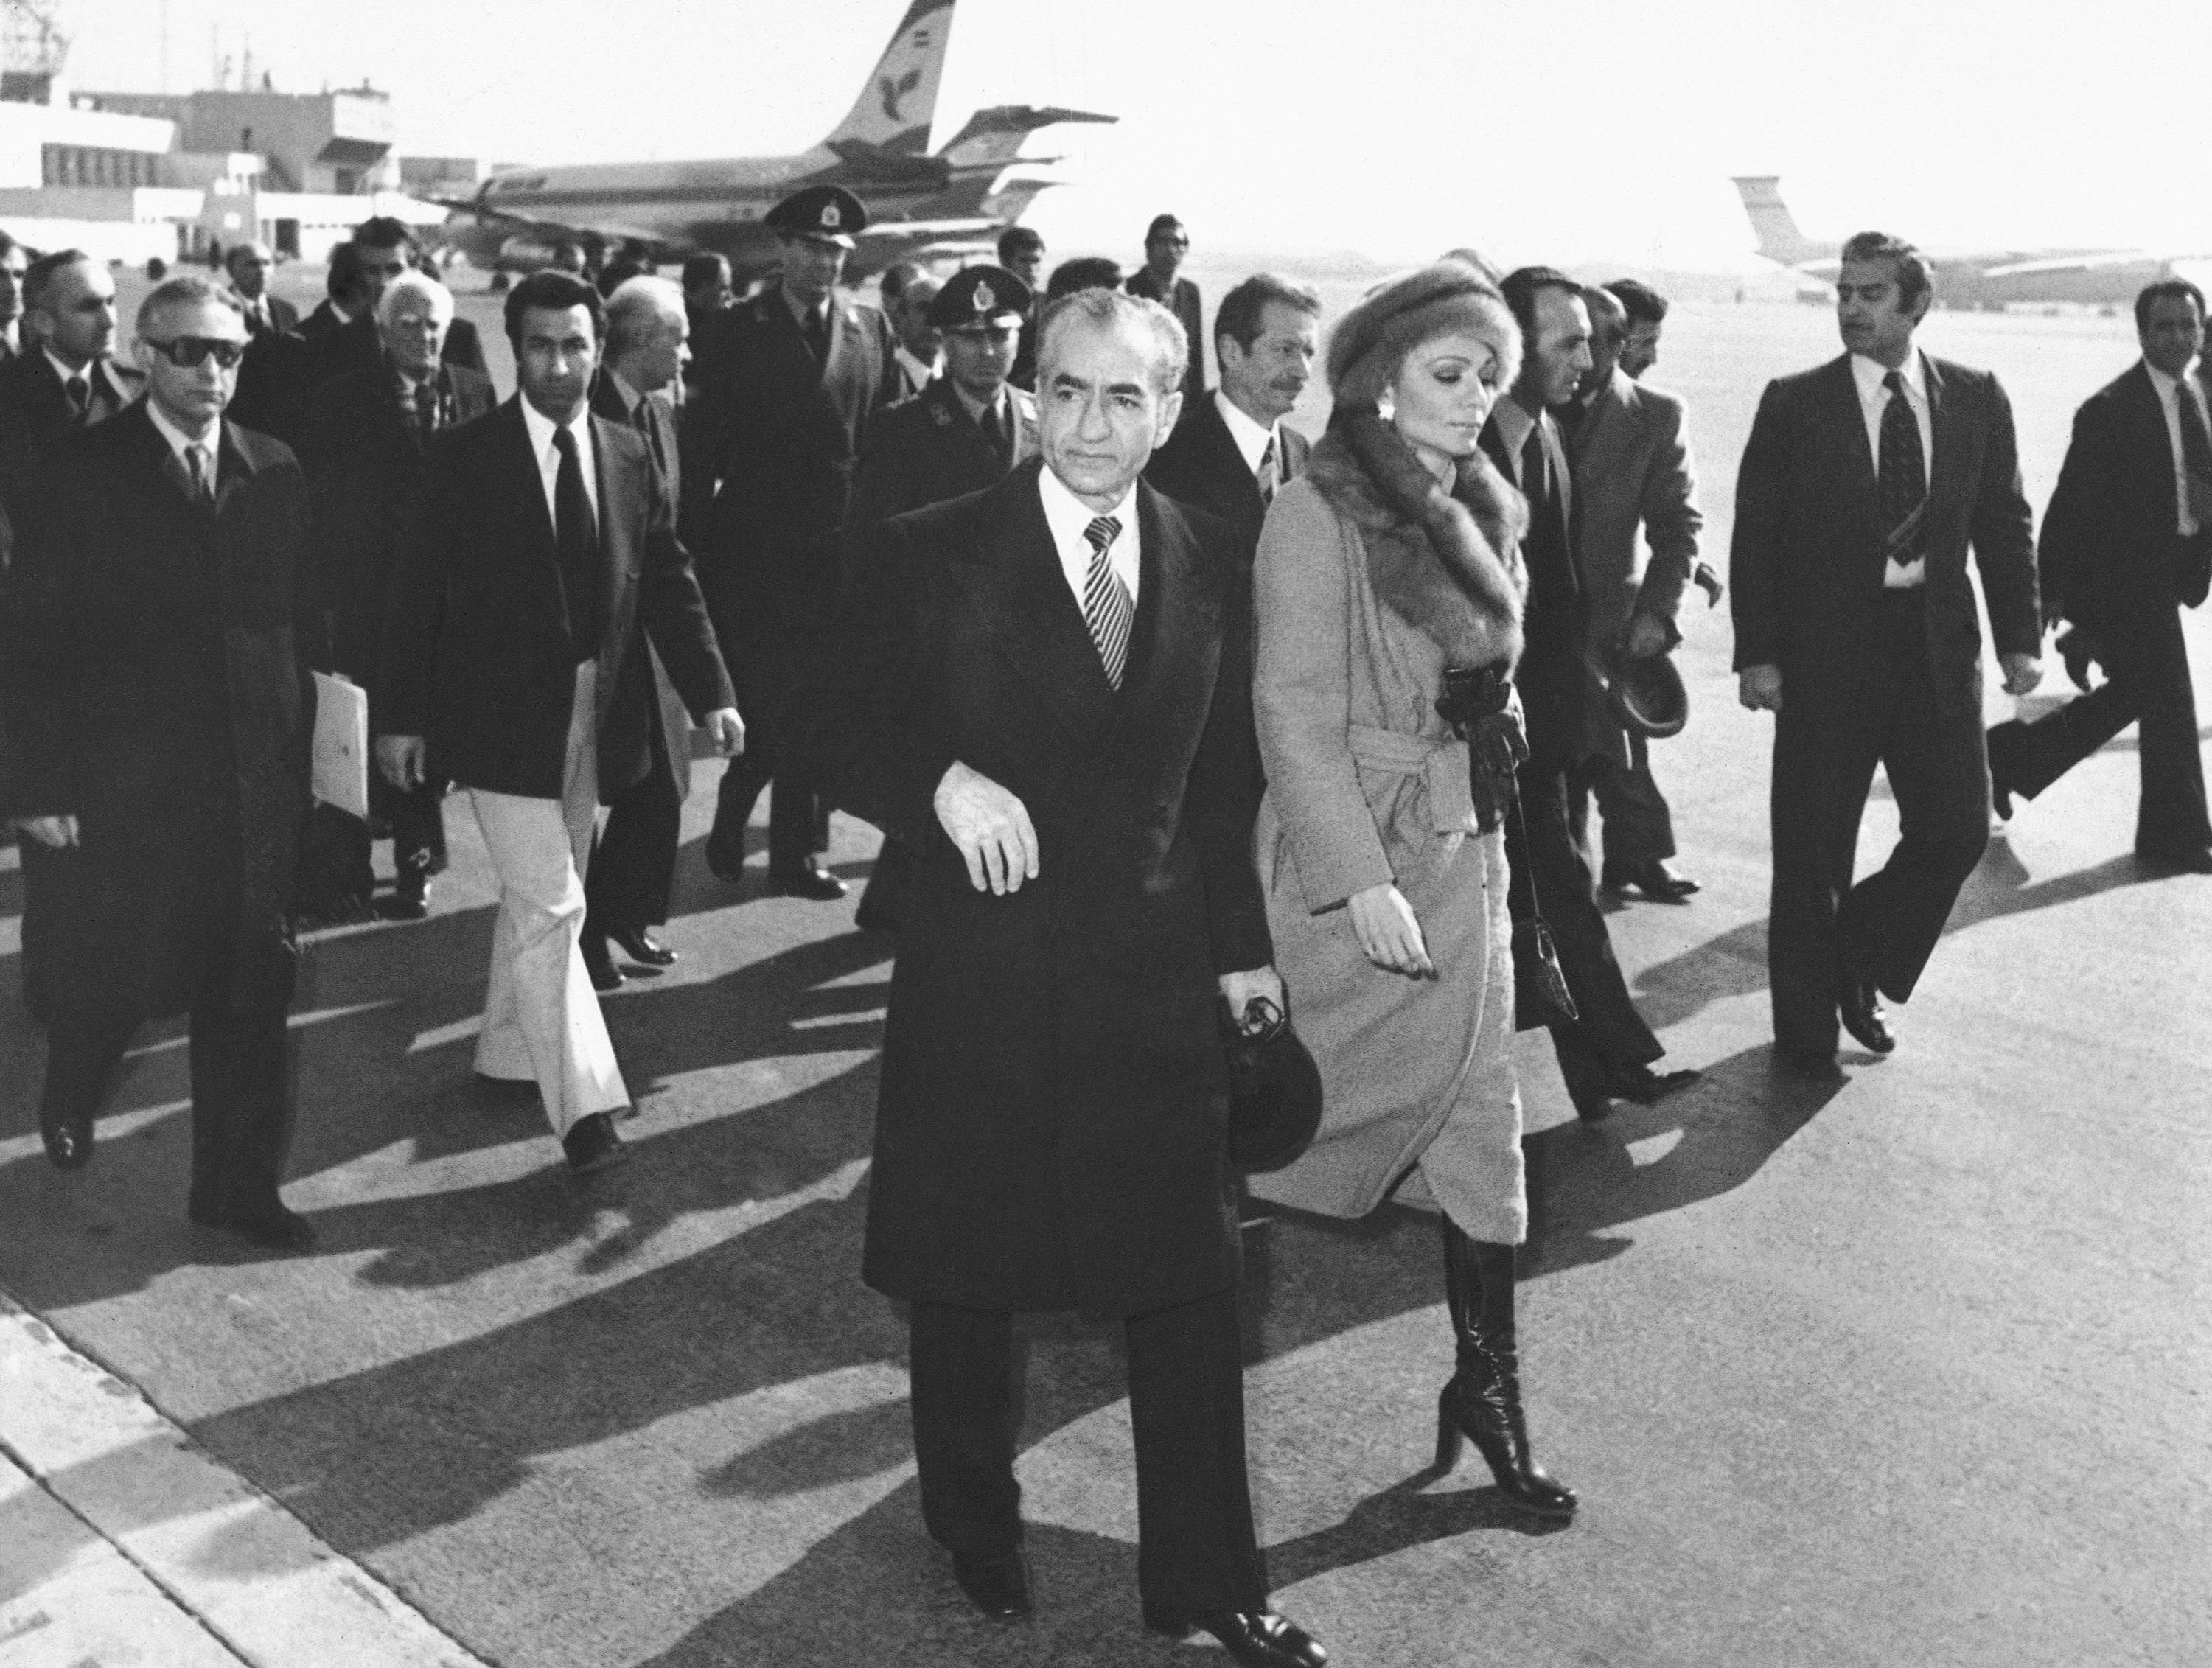 Image result for shah farewell iranian airport Mehrabad airport on January 14, 1979